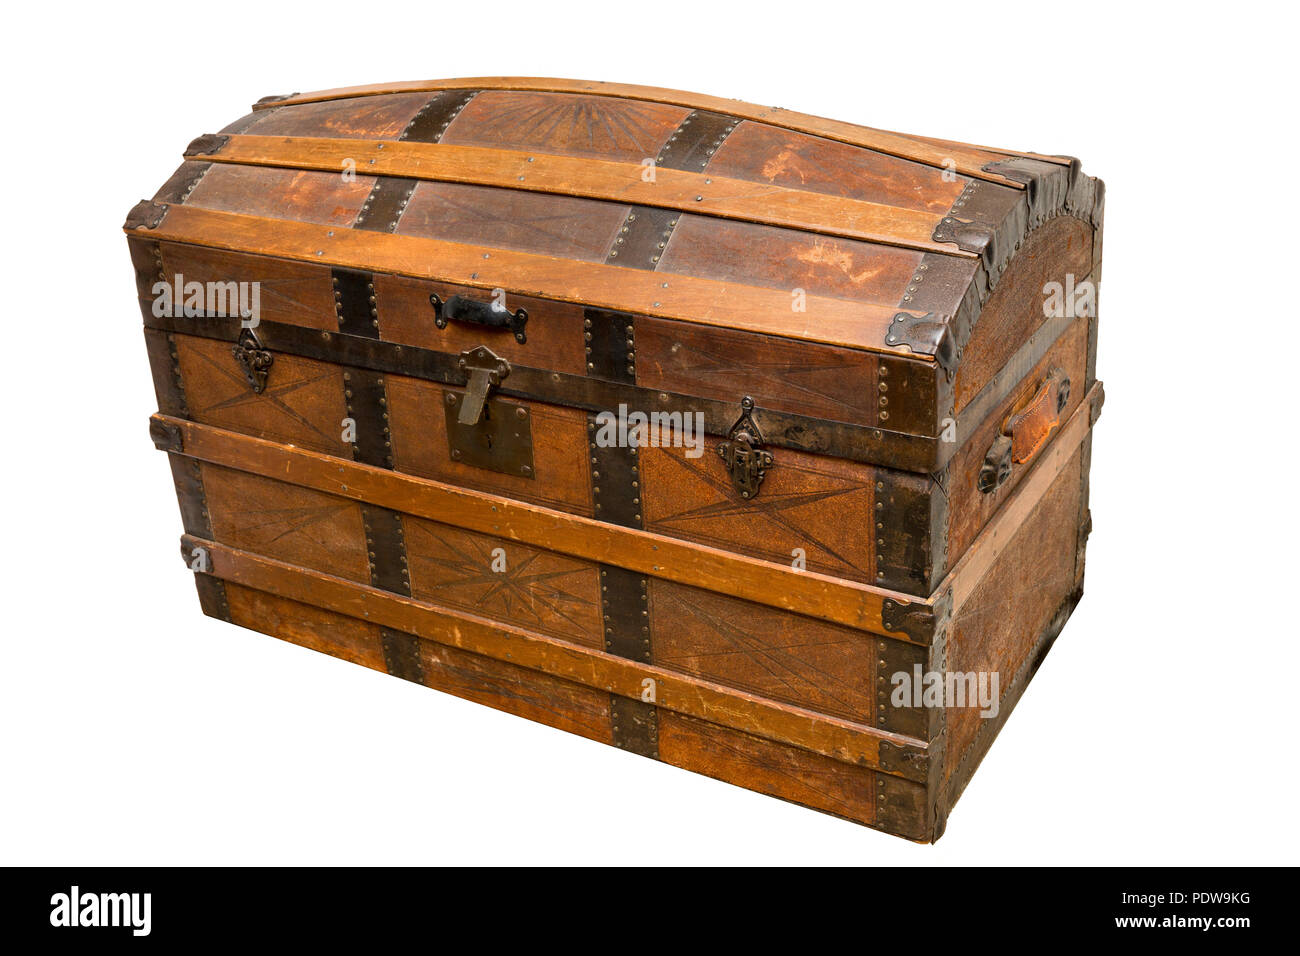 Victorian Dome topped steamer trunk with riveted metal banding and tooled leather decoration - Stock Image